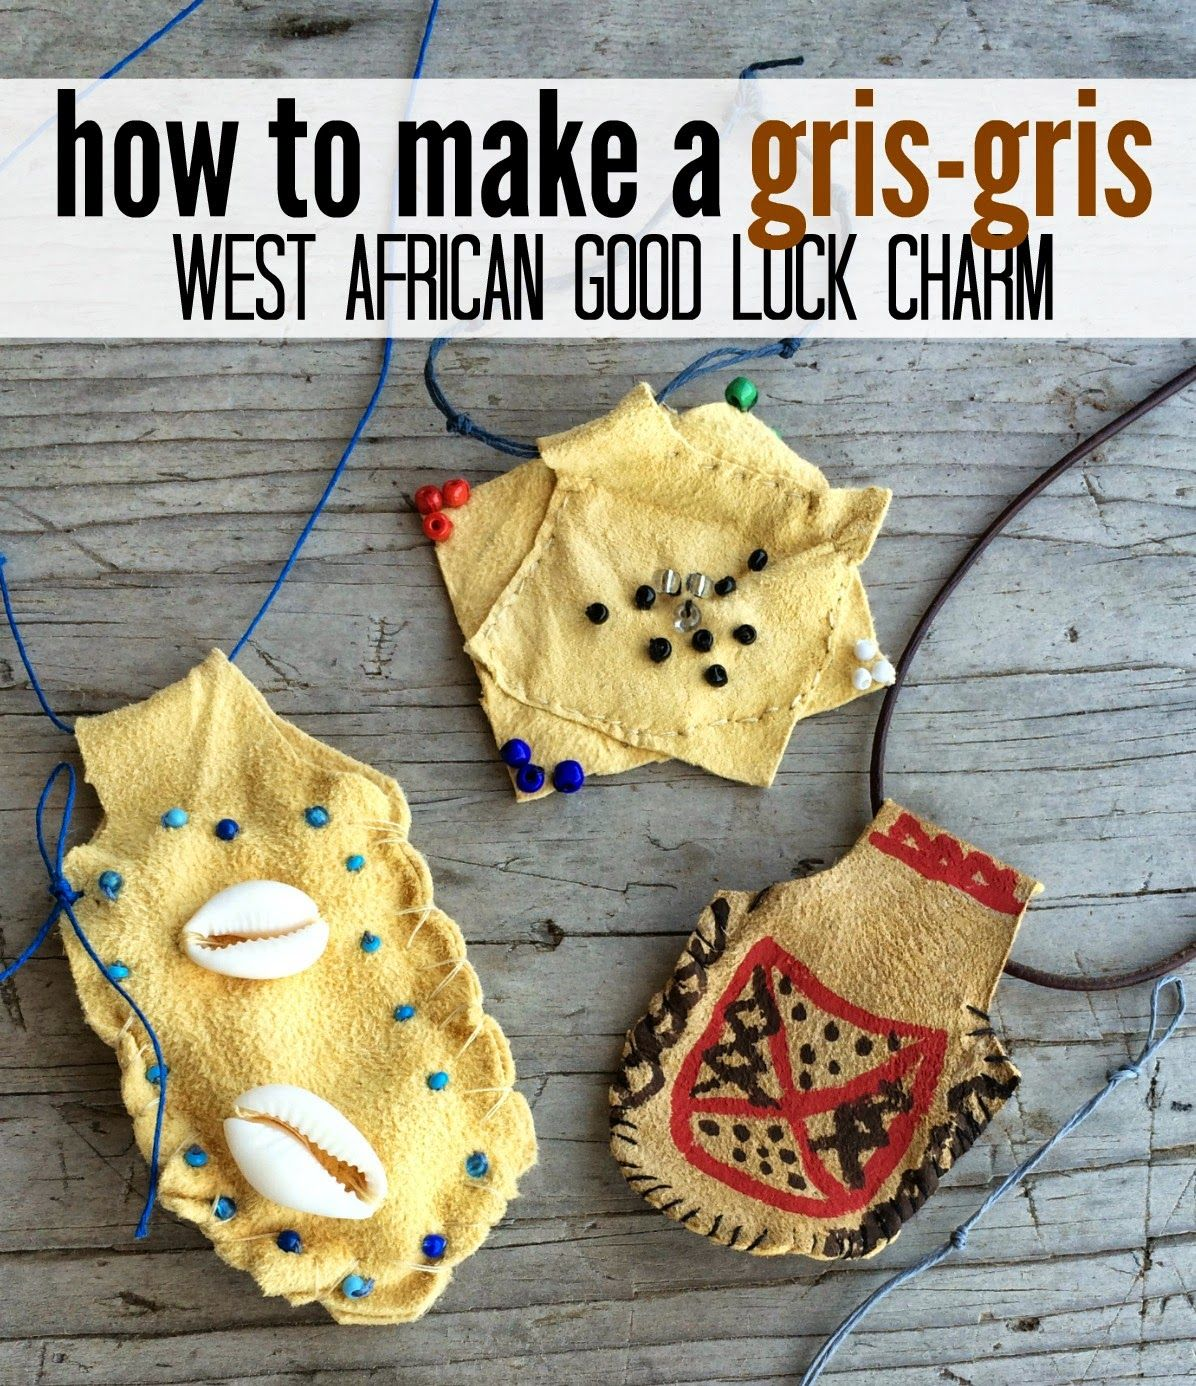 Voodoo School Worksheets : Marie s pastiche how to make a gris west african